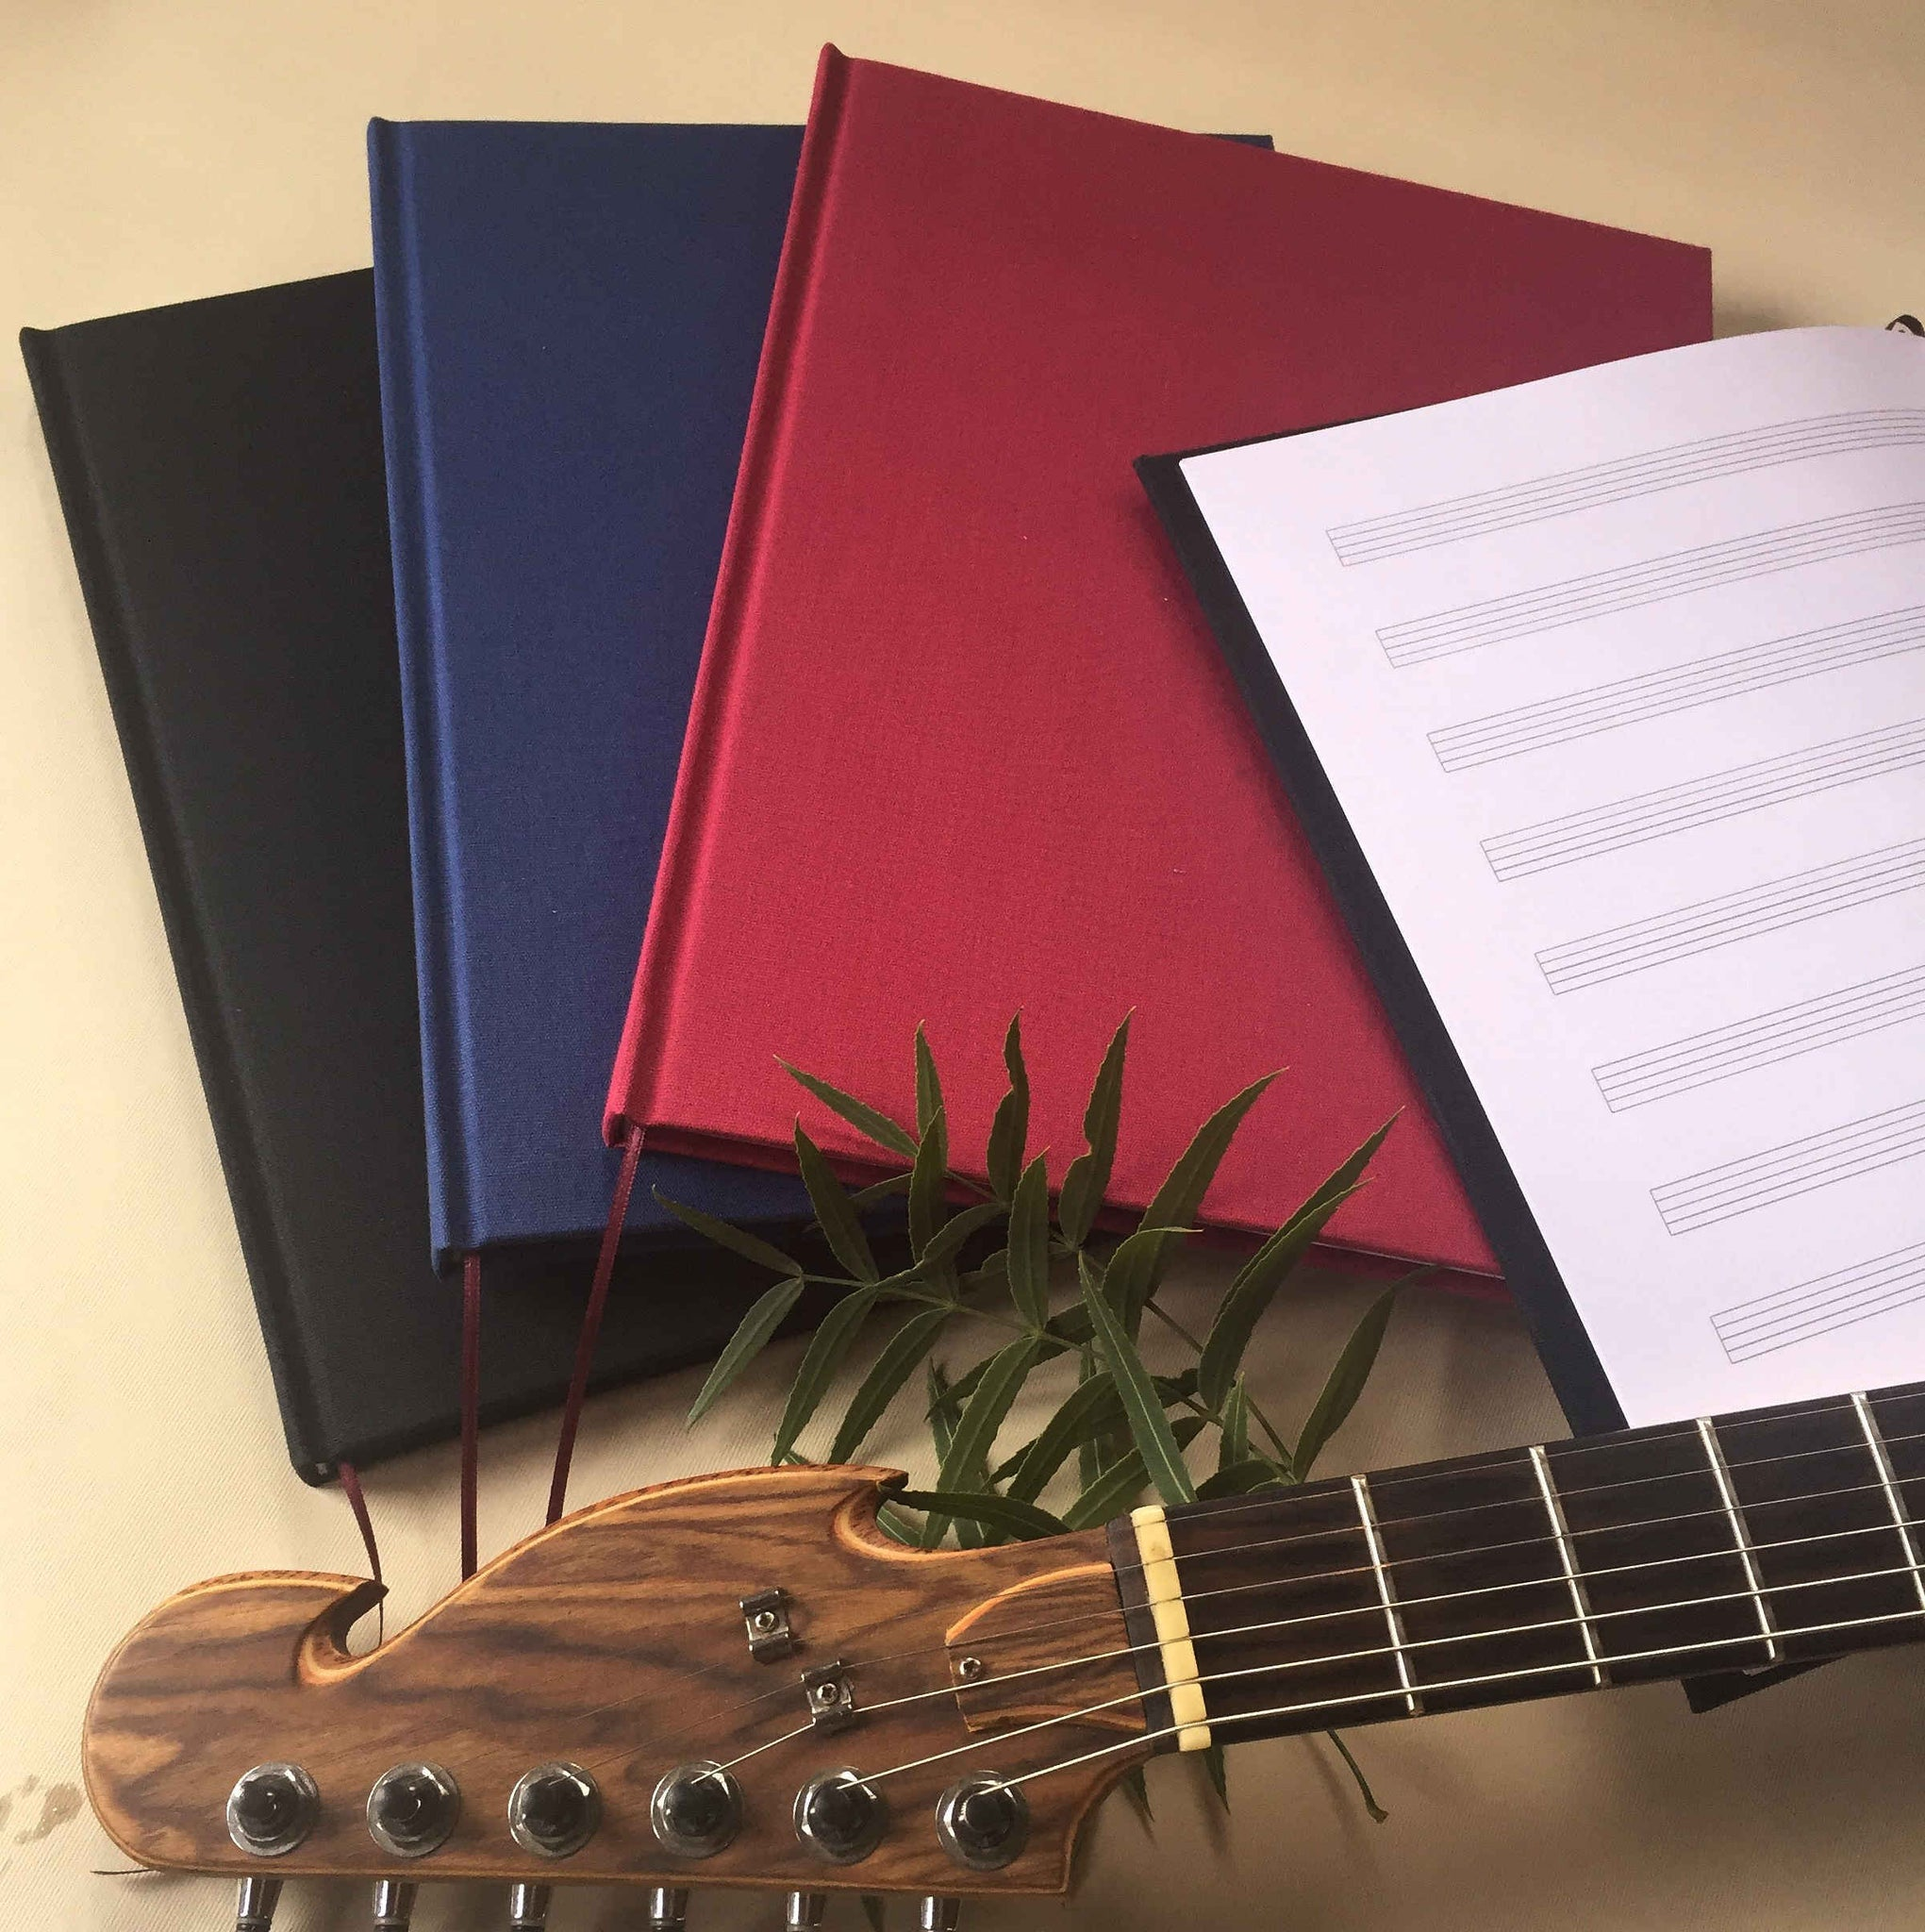 FREE SHIPPING Timeless Composer's Journal. Blank Sheet Music Notebook. Gift for Musician. - Transient Books